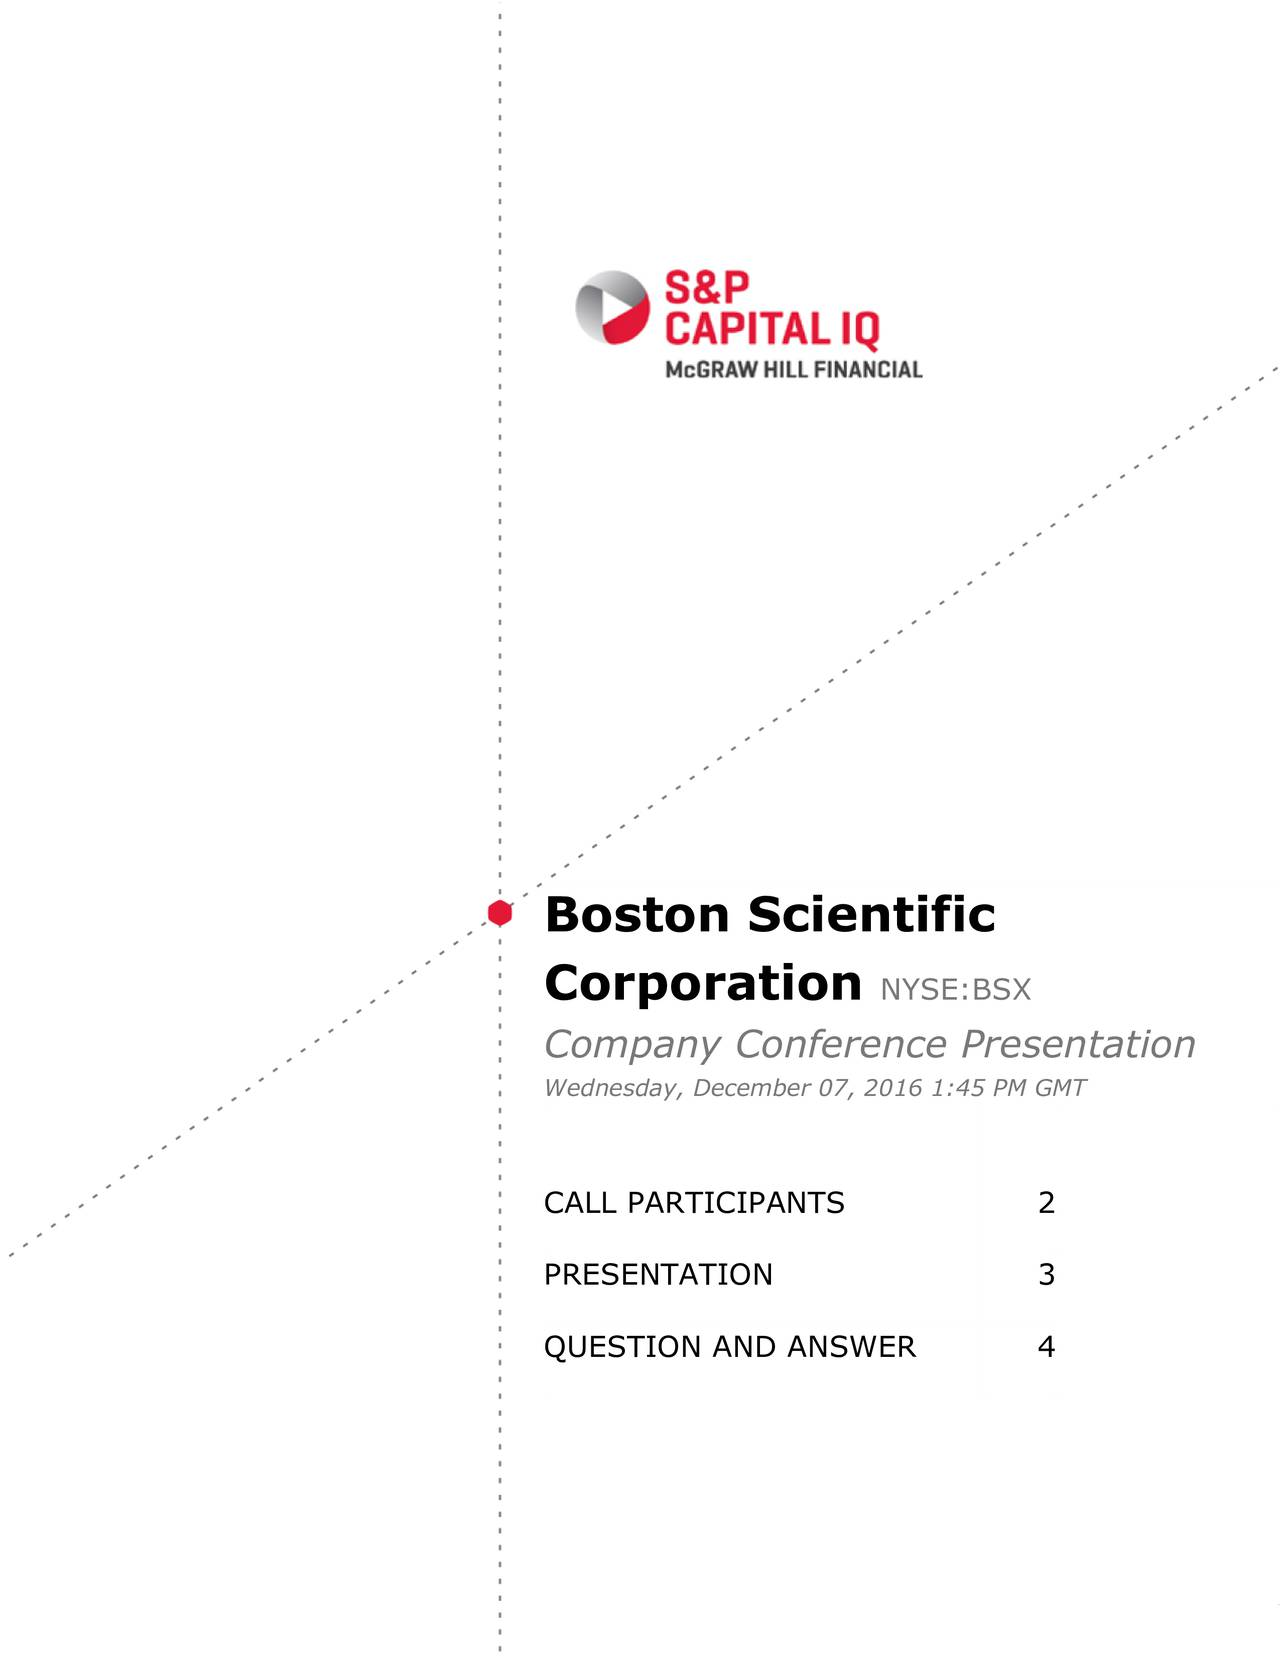 Corporation NYSE:BSX Company Conference Presentation Wednesday, December 07, 2016 1:45 PM GMT CALL PARTICIPANTS 2 PRESENTATION 3 QUESTION AND ANSWER 4 ................................................................................................ WWW.SPCAPITALIQ.COM................................................. COPYRIGHT  2016, S&P CAPITAL IQ, A PART OF MCGRAW HILL FINANCIAL. 1